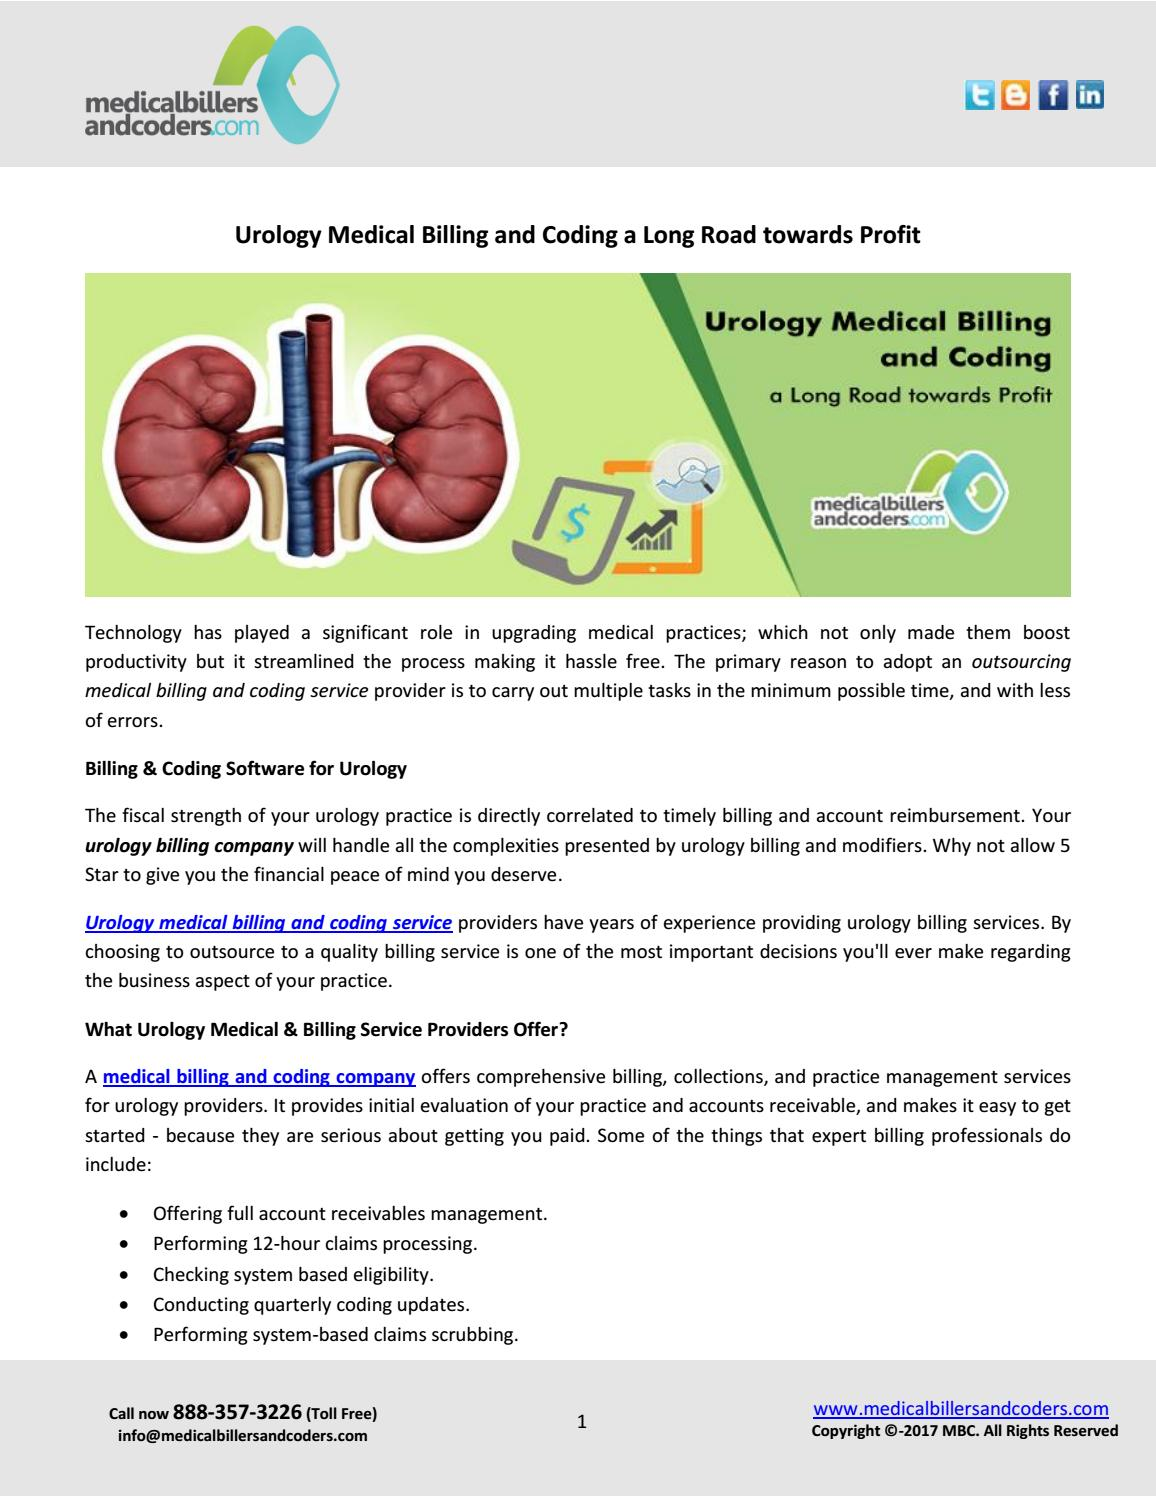 urology medical billing and coding a long road towards